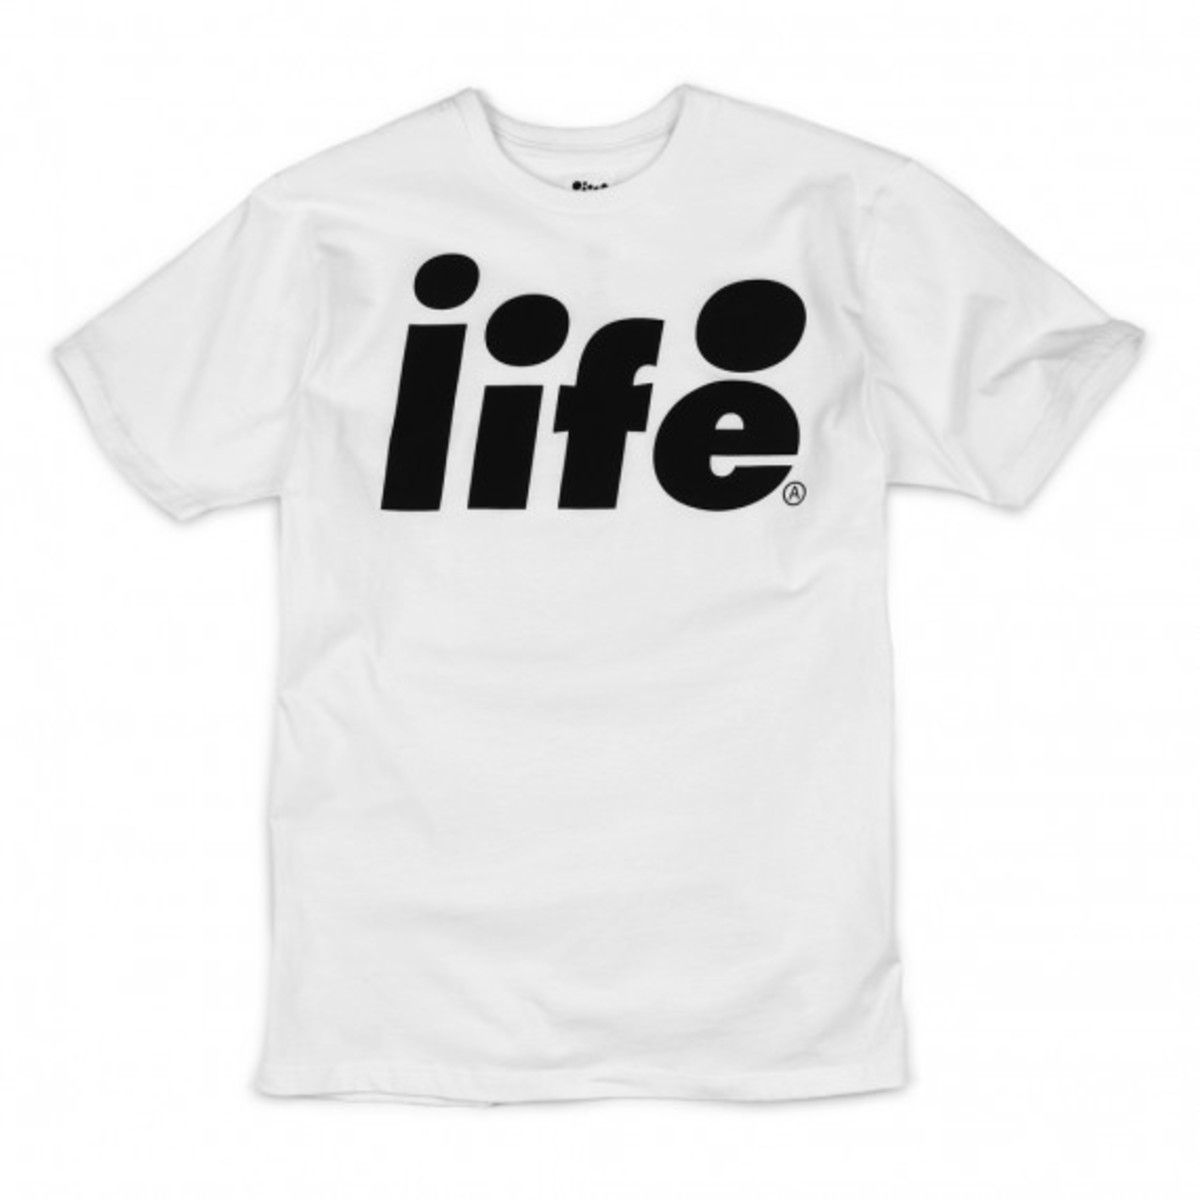 alife-tshirts-accessories-fall-2011-31